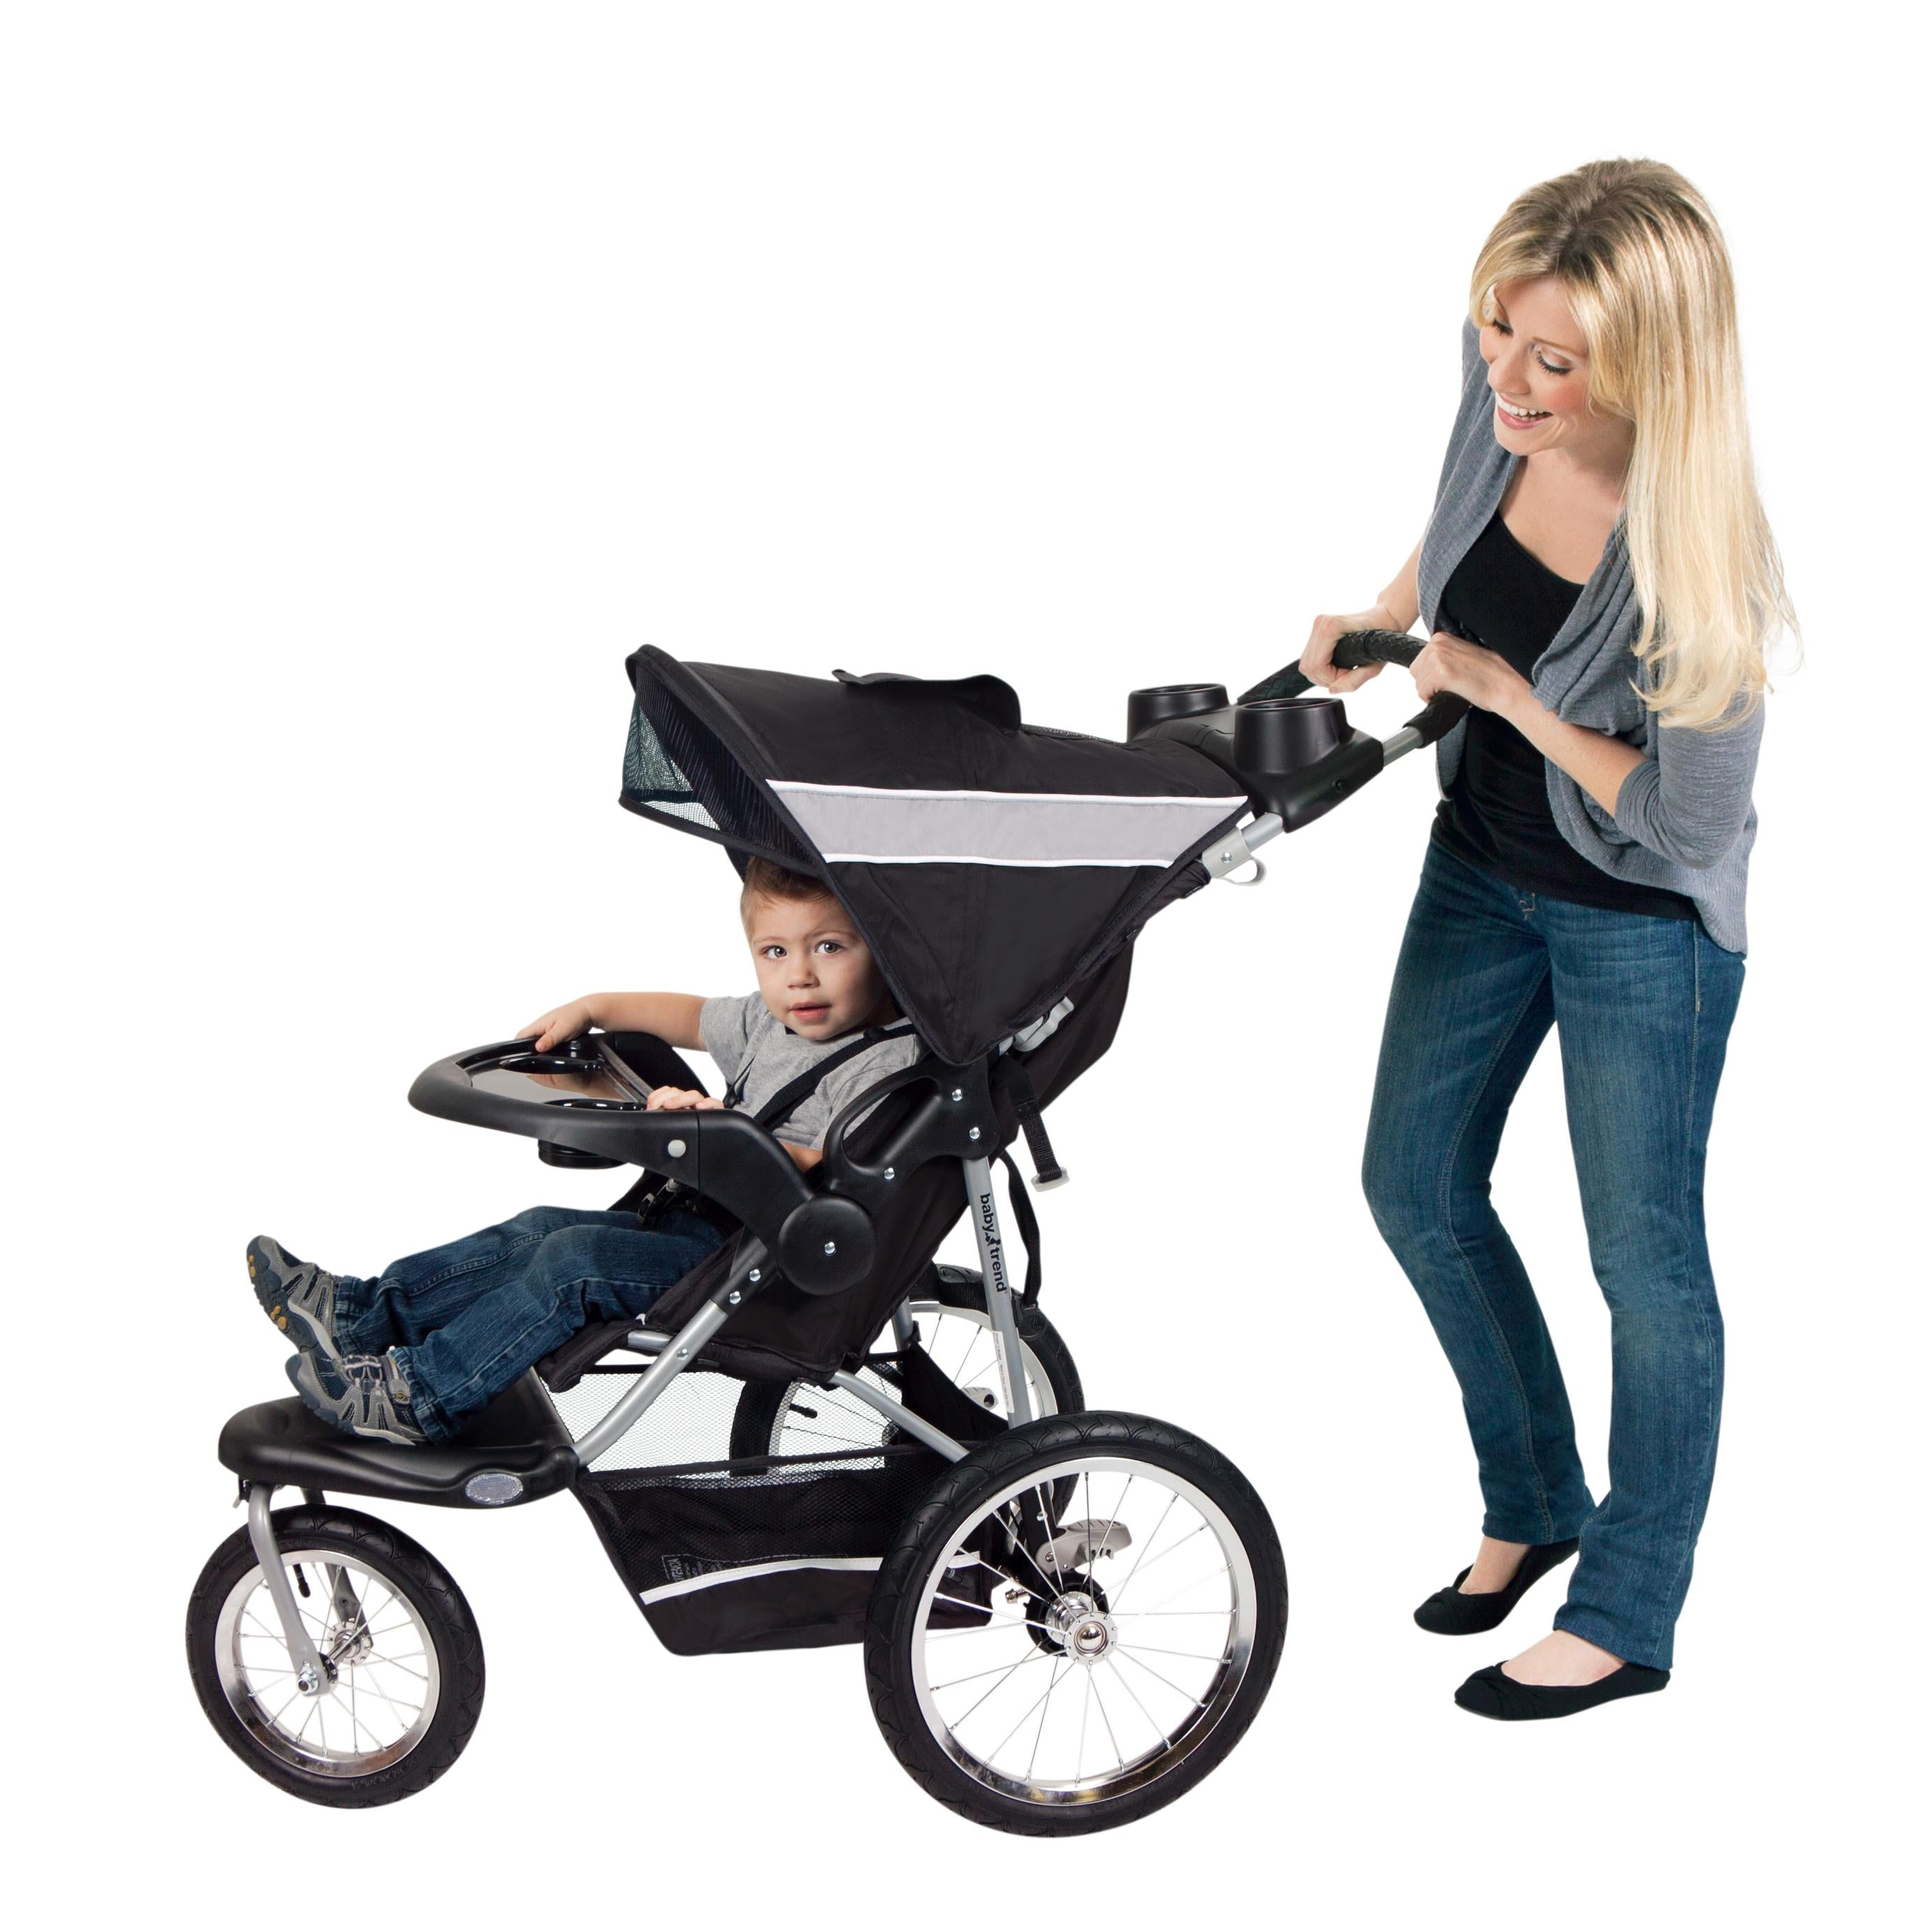 Human, Get Out And About With Your Baby Stroller